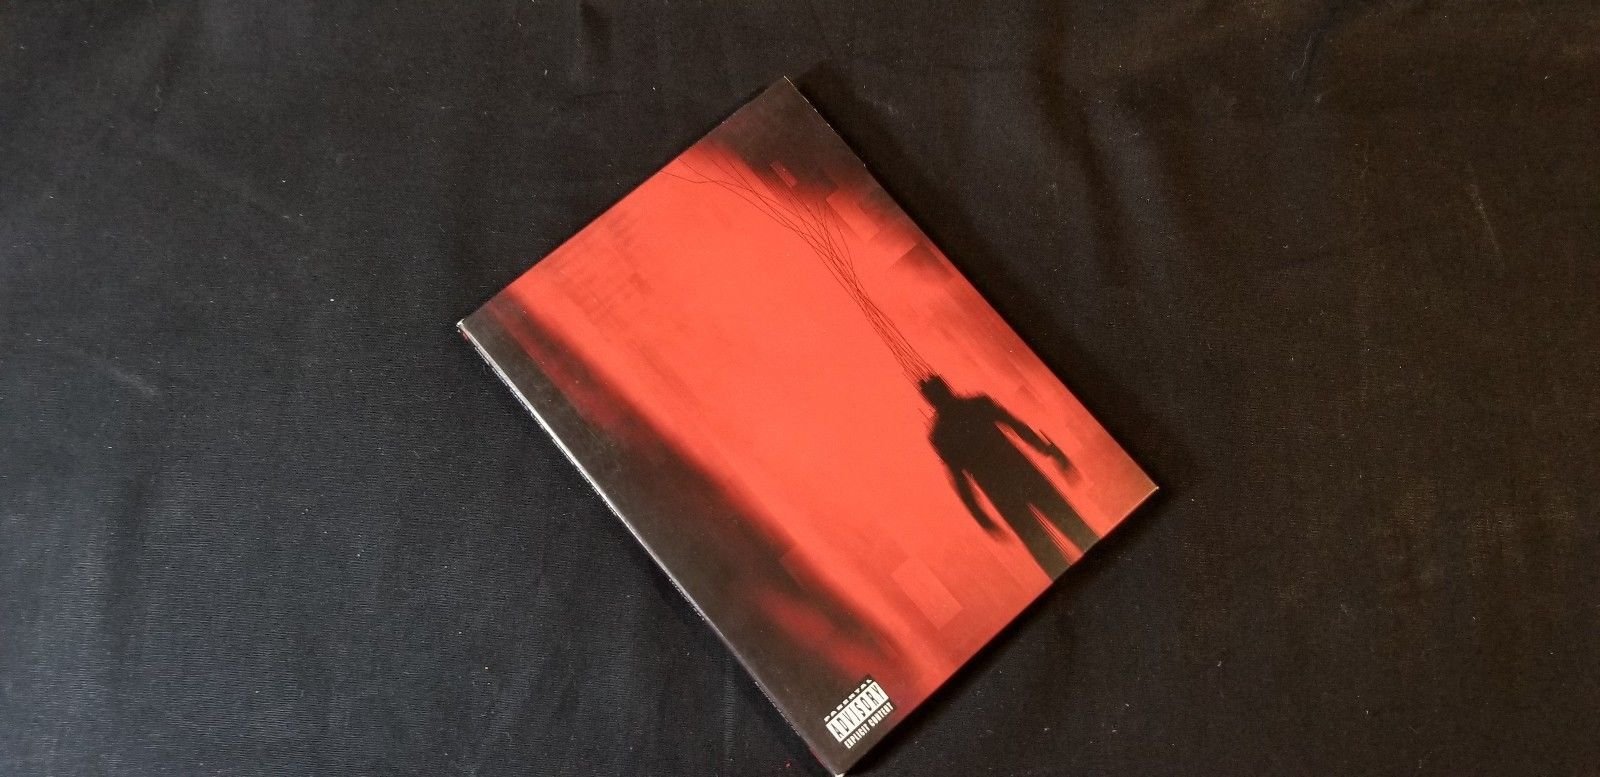 Nine Inch Nails - Beside You in Time (DVD, and 50 similar items